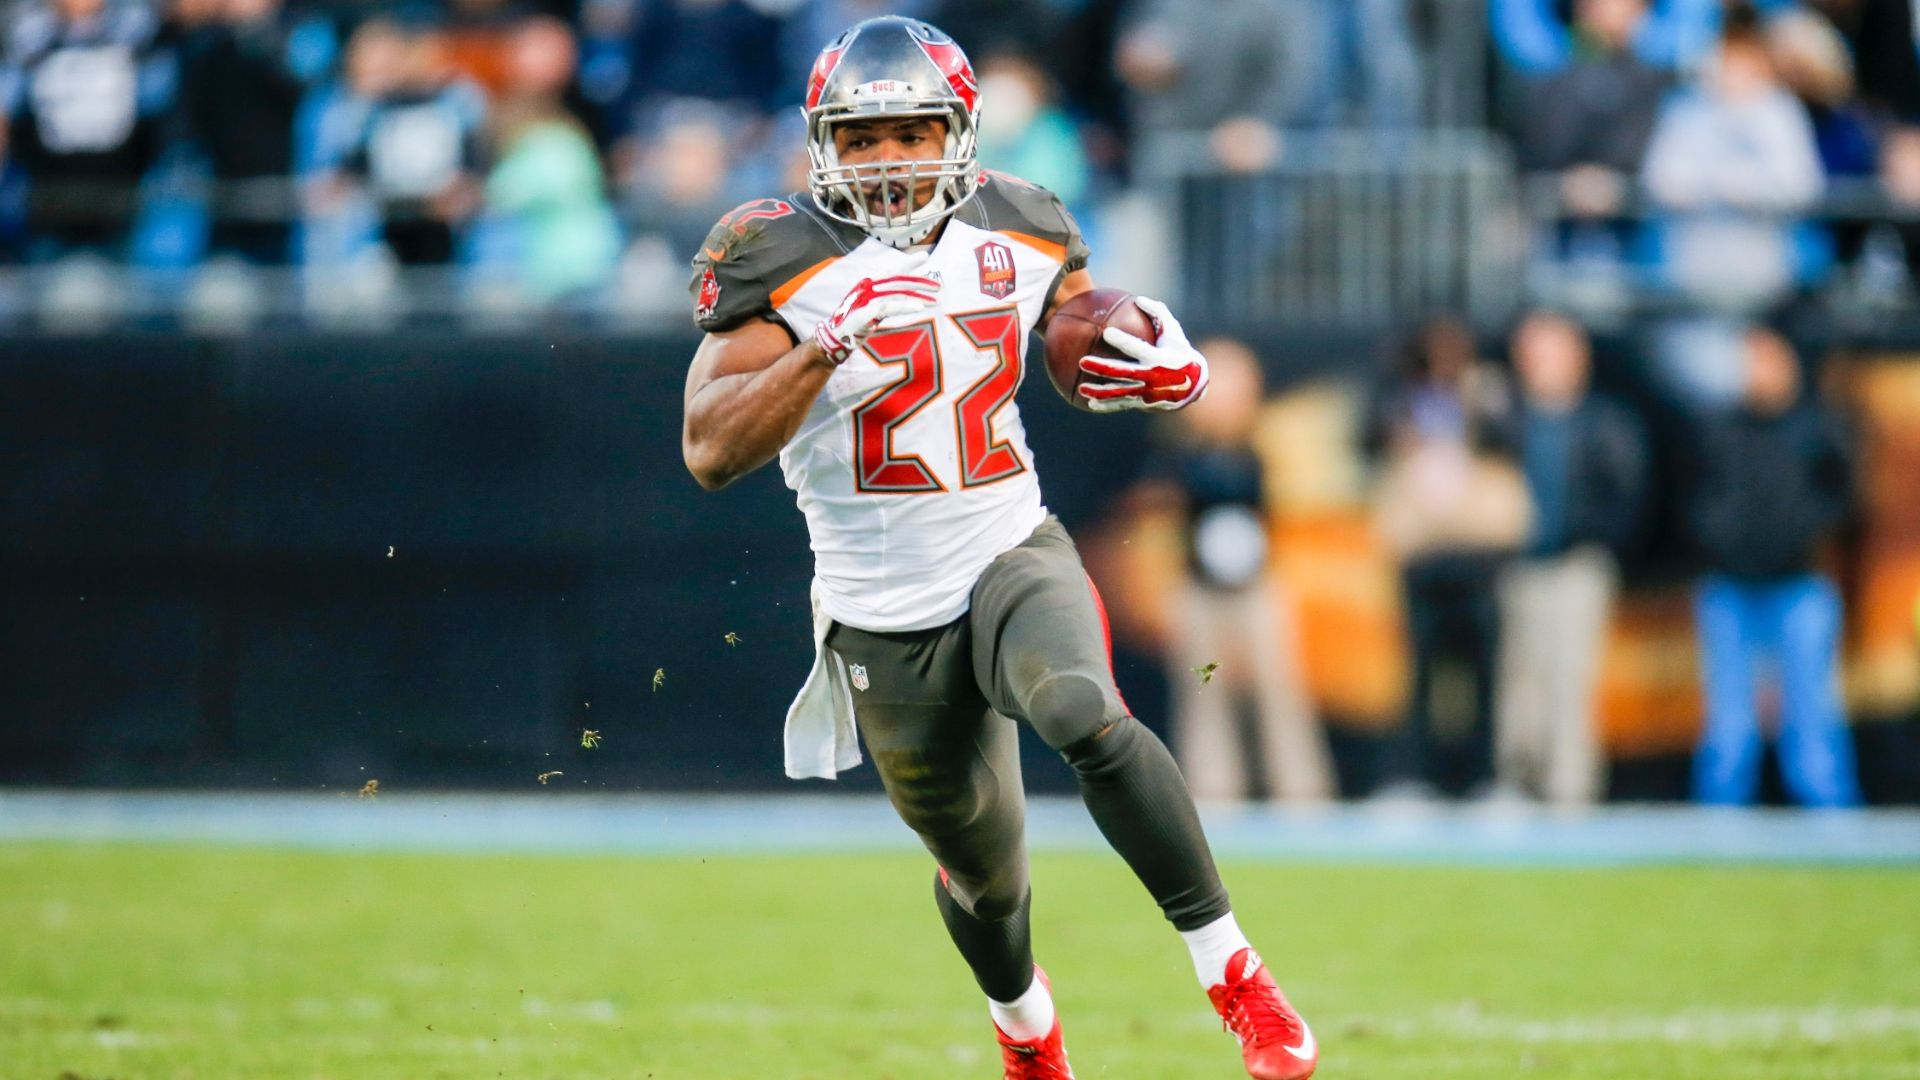 Martin being back with Bucs makes sense